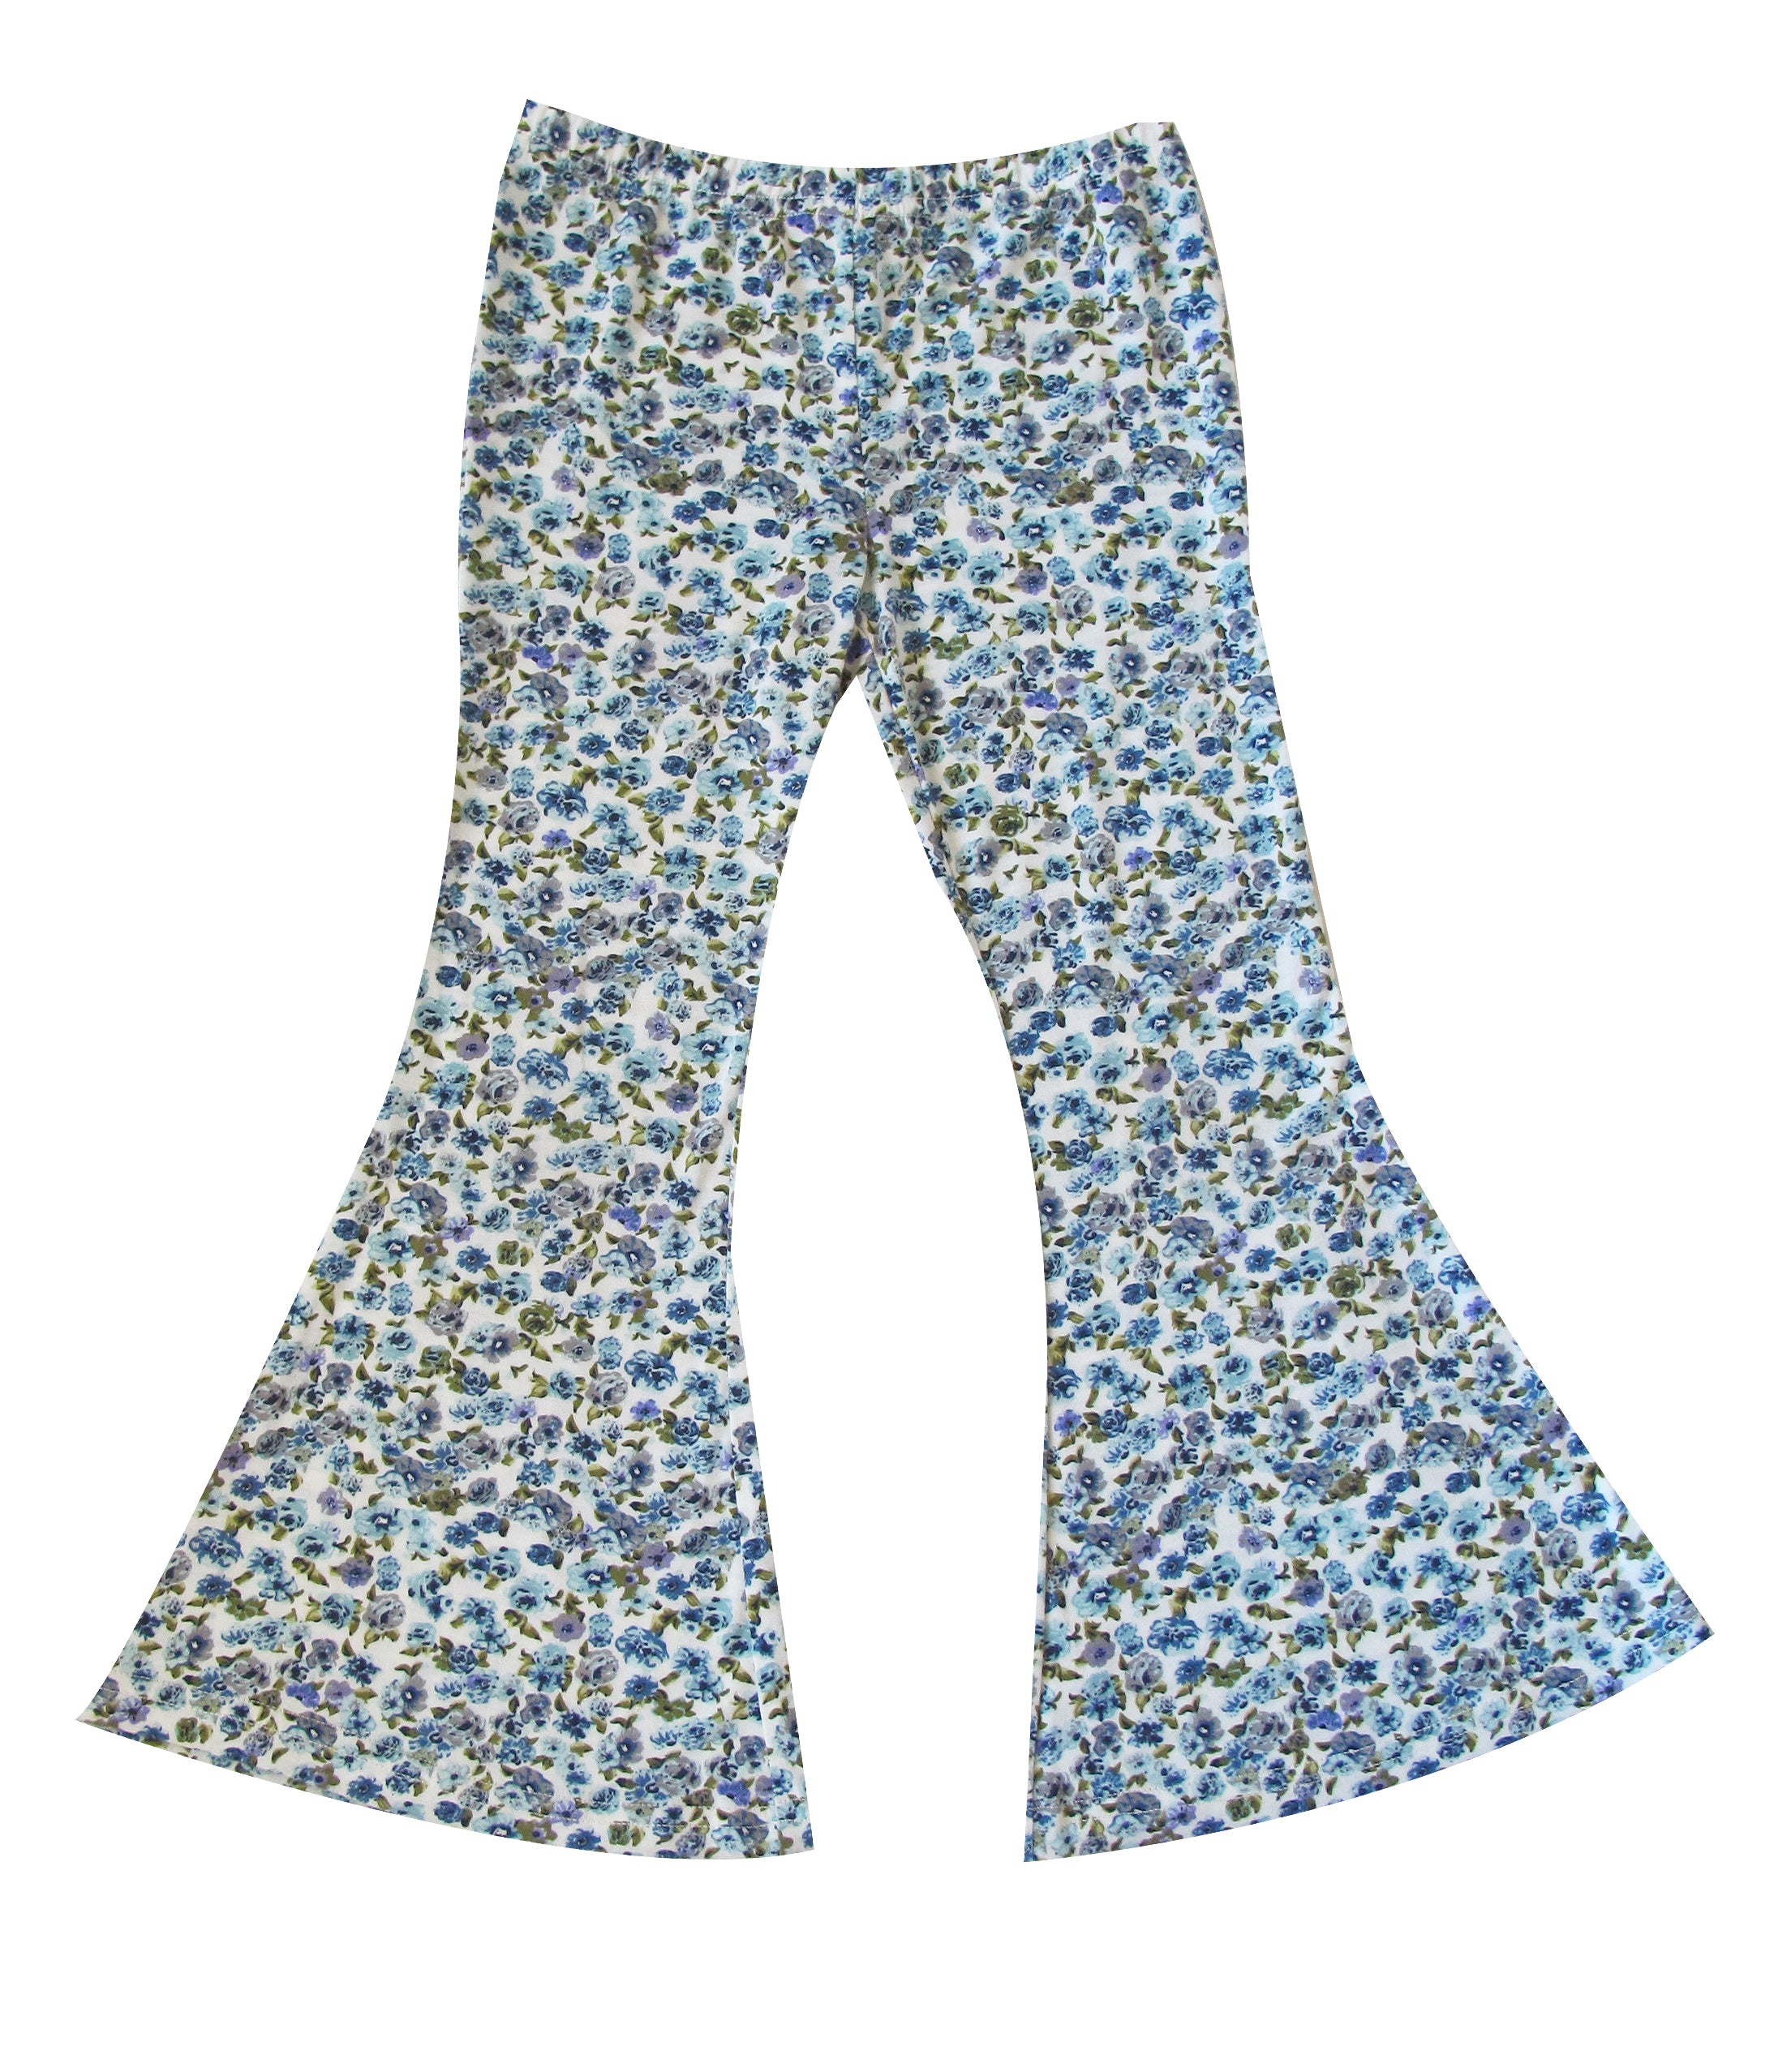 Girls Bell Bottoms - Dusty Blue Floral